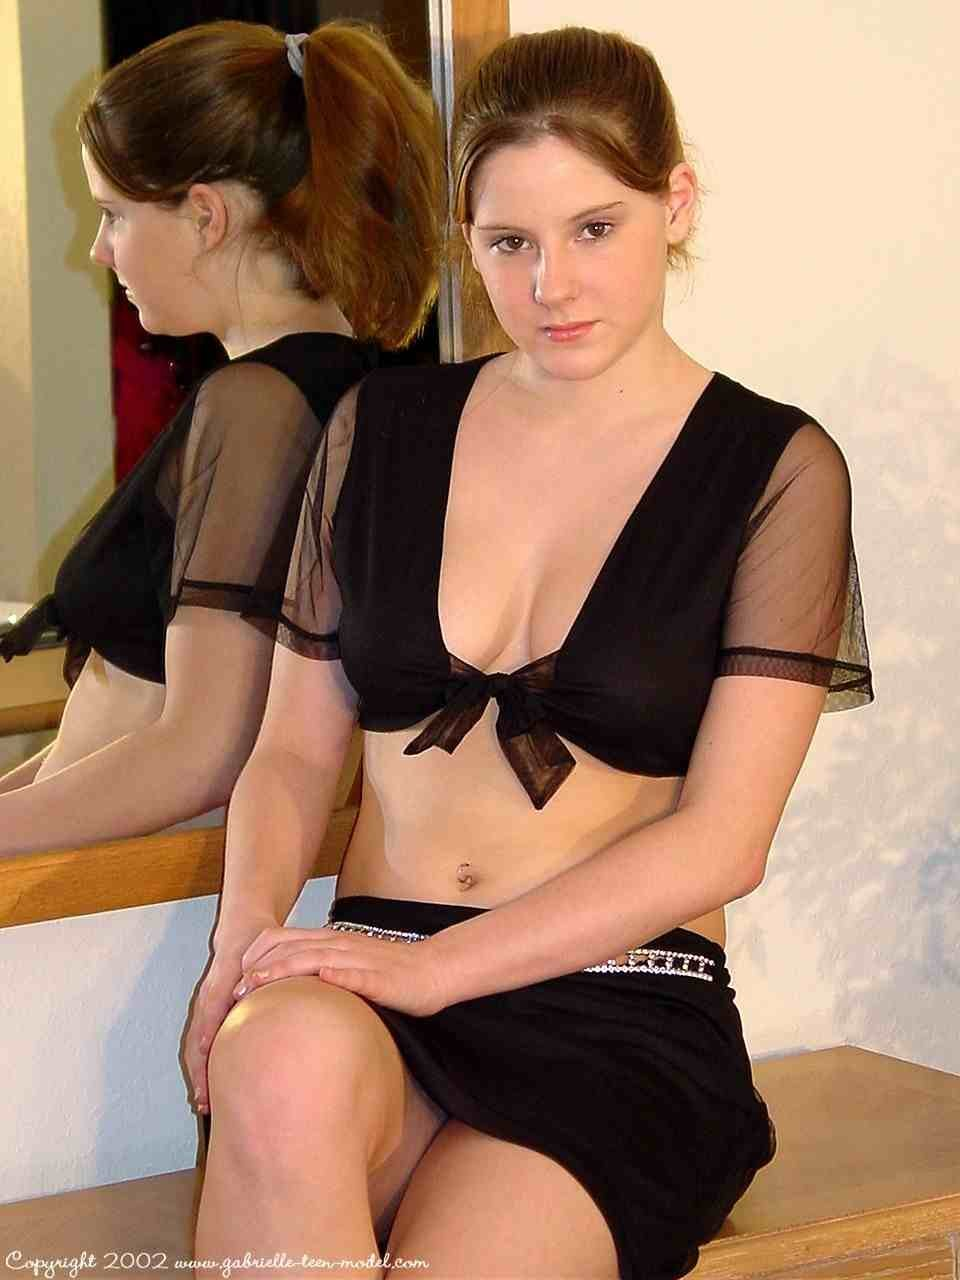 free granny lingerie pics there